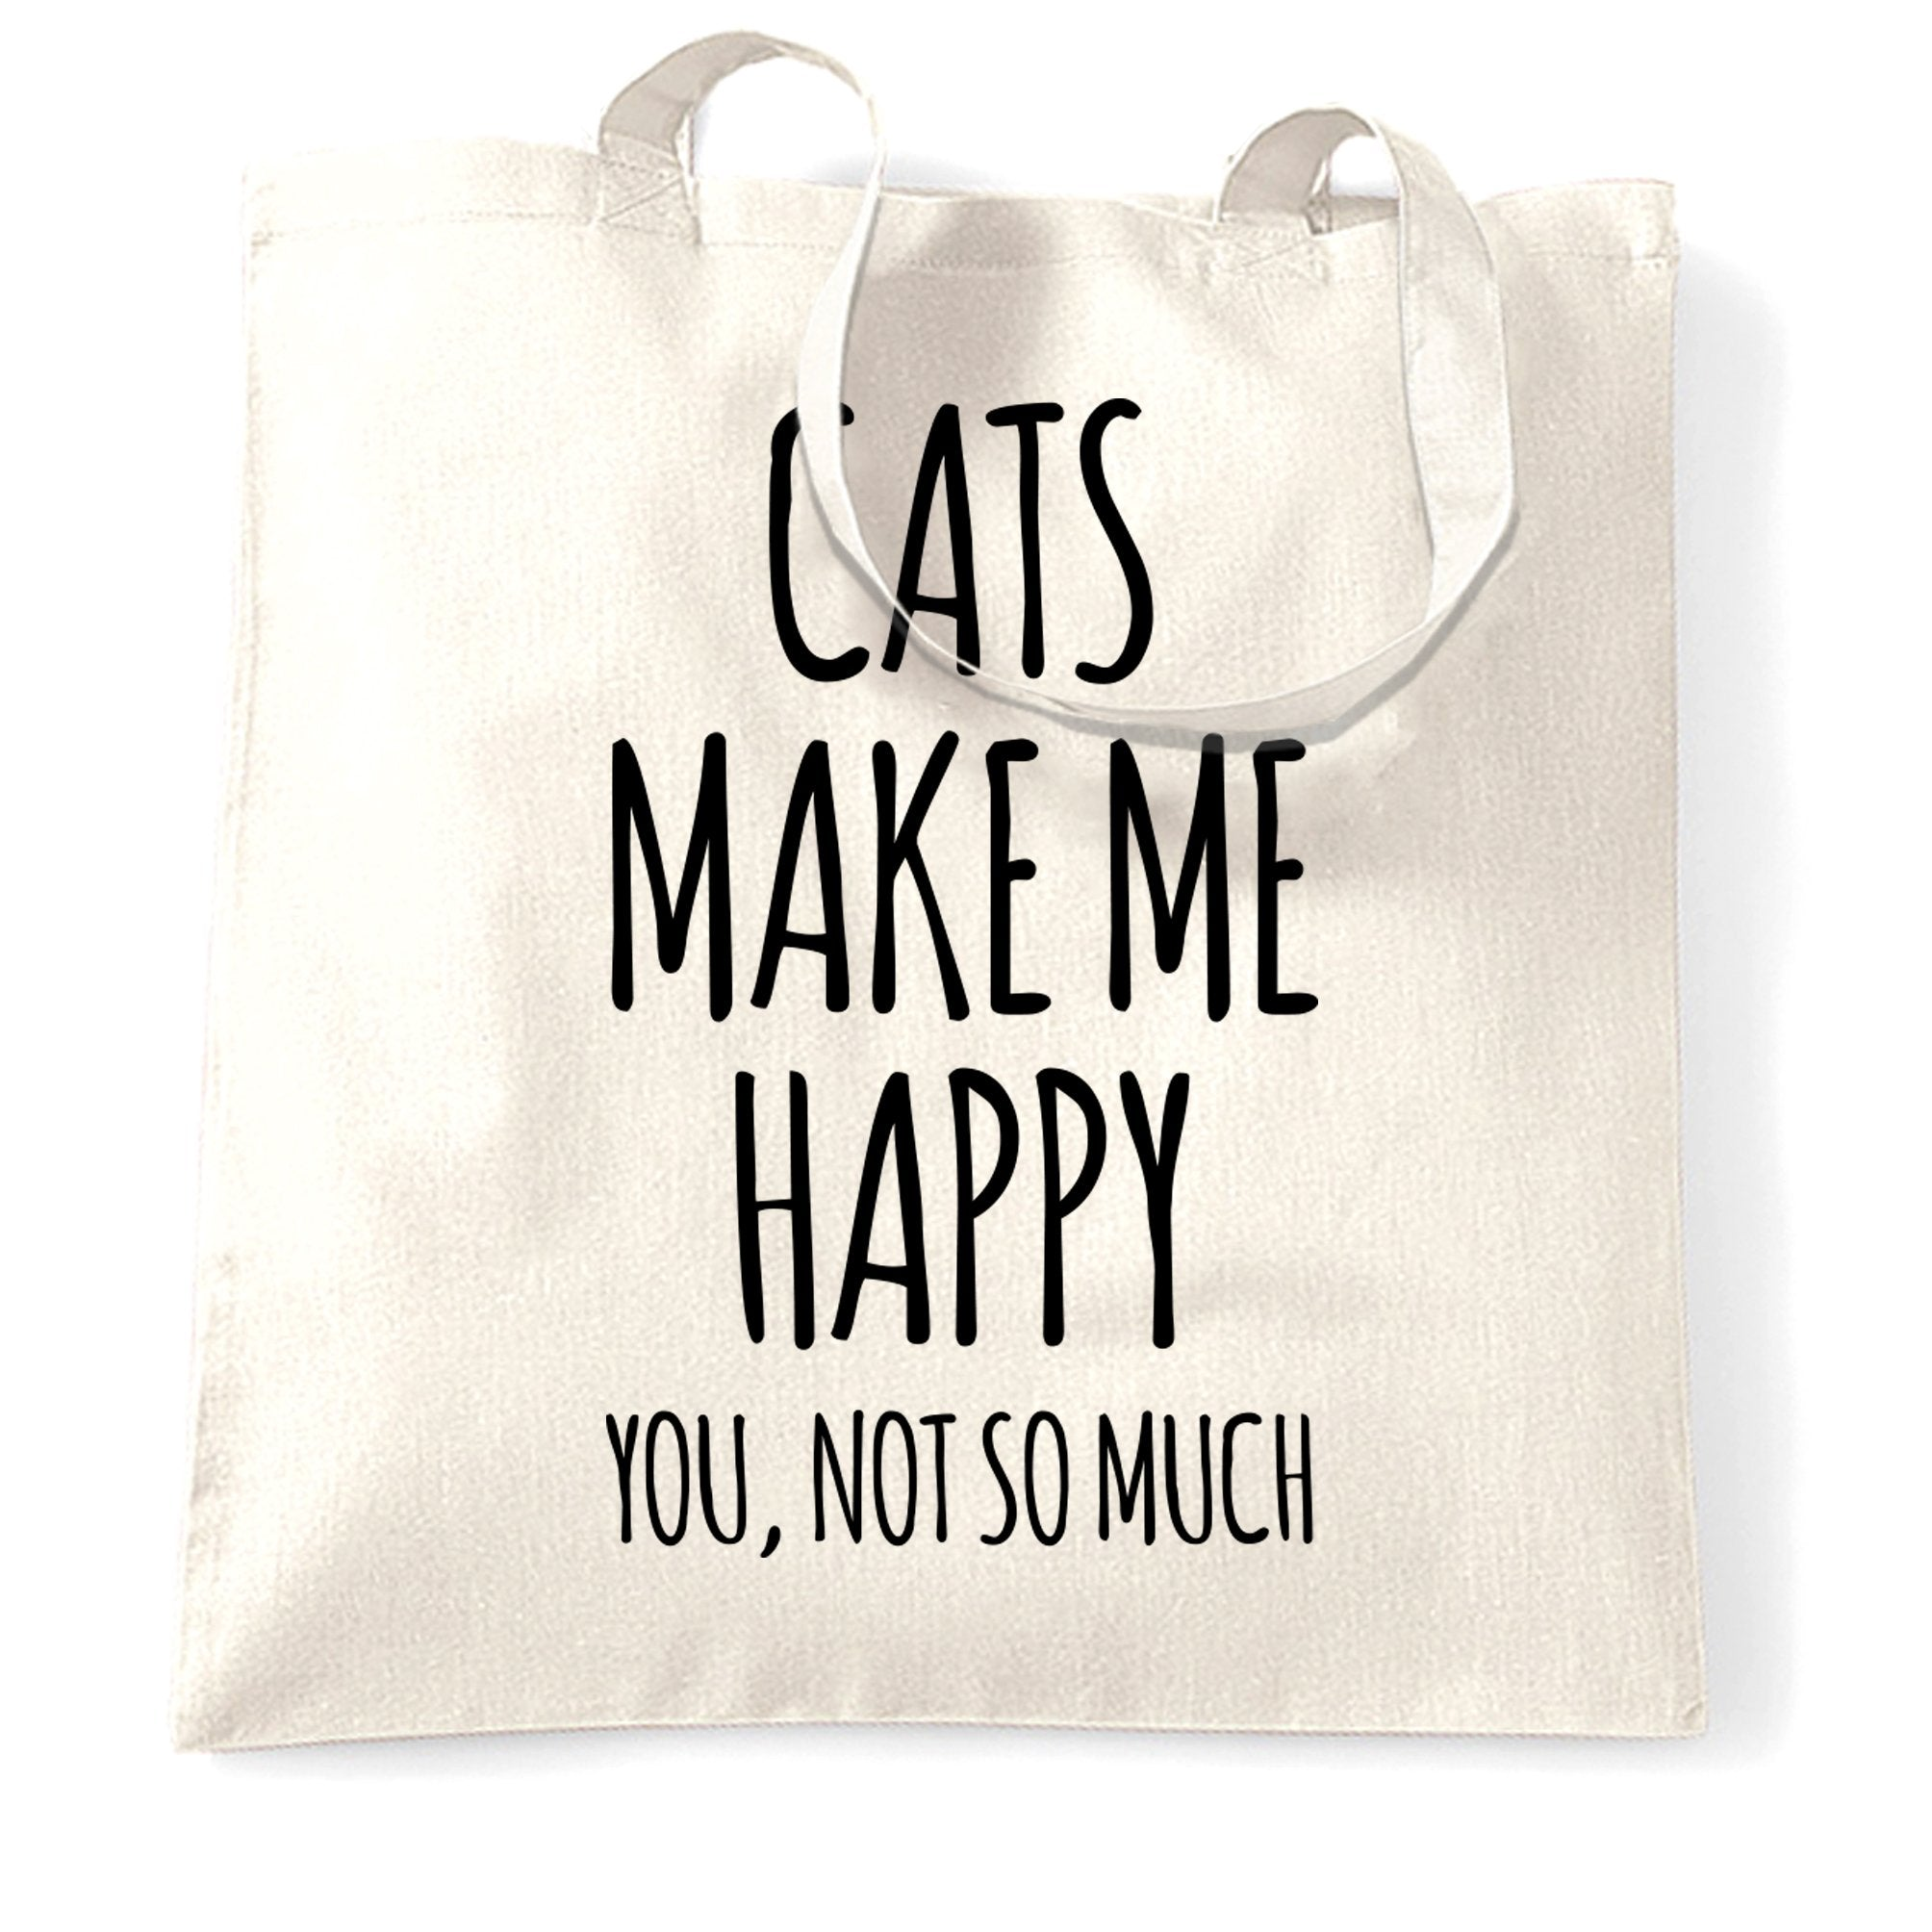 Novelty Tote Bag Cats Make Me Happy, You, Not So Much